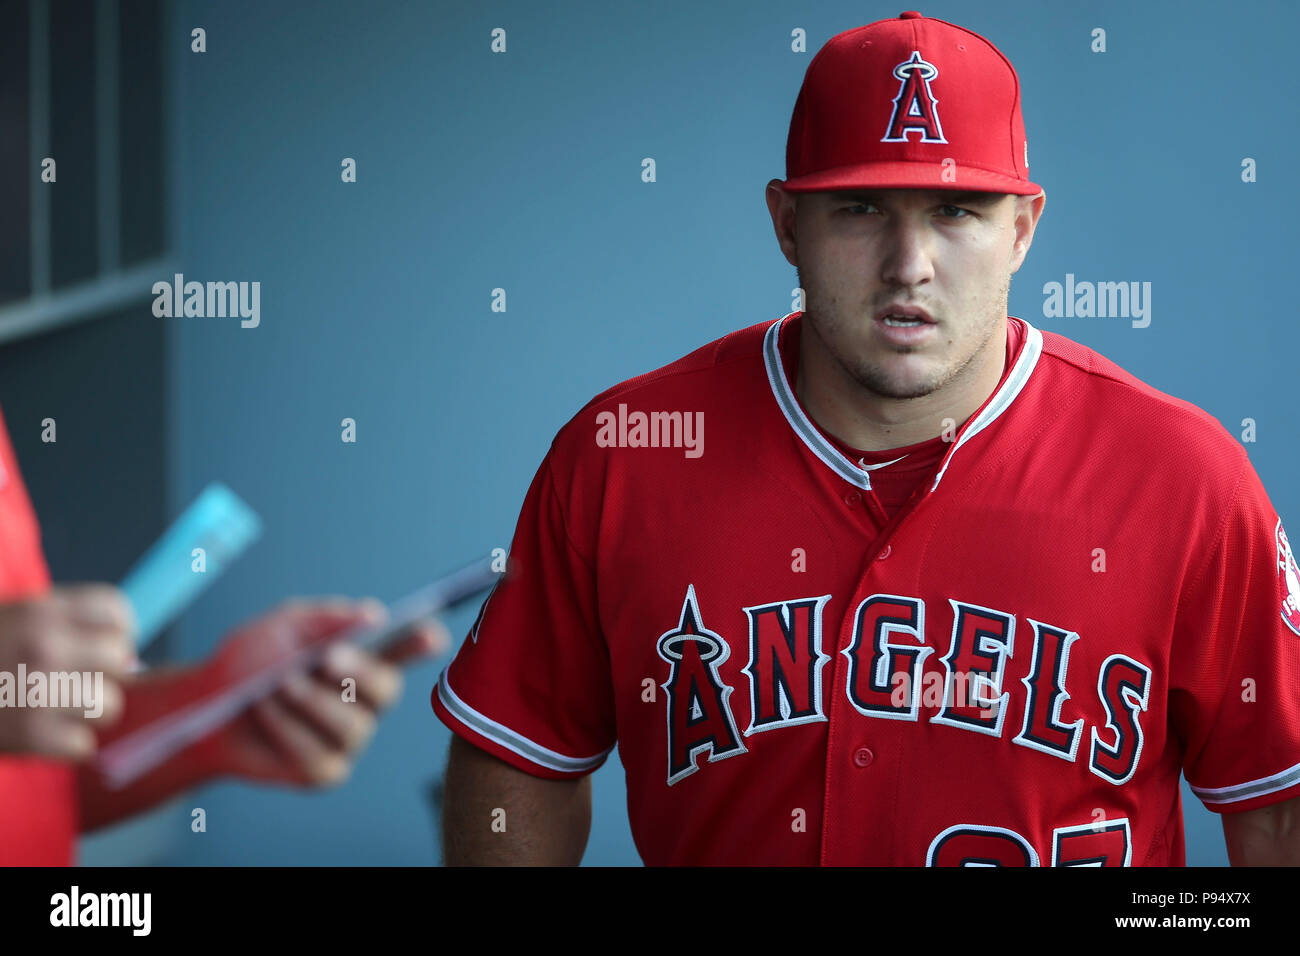 ca3615bac Los Angeles Angels center fielder Mike Trout (27) looks all business as he  enter the Angels dugout before the game between the Los Angeles Angels of  Anaheim ...